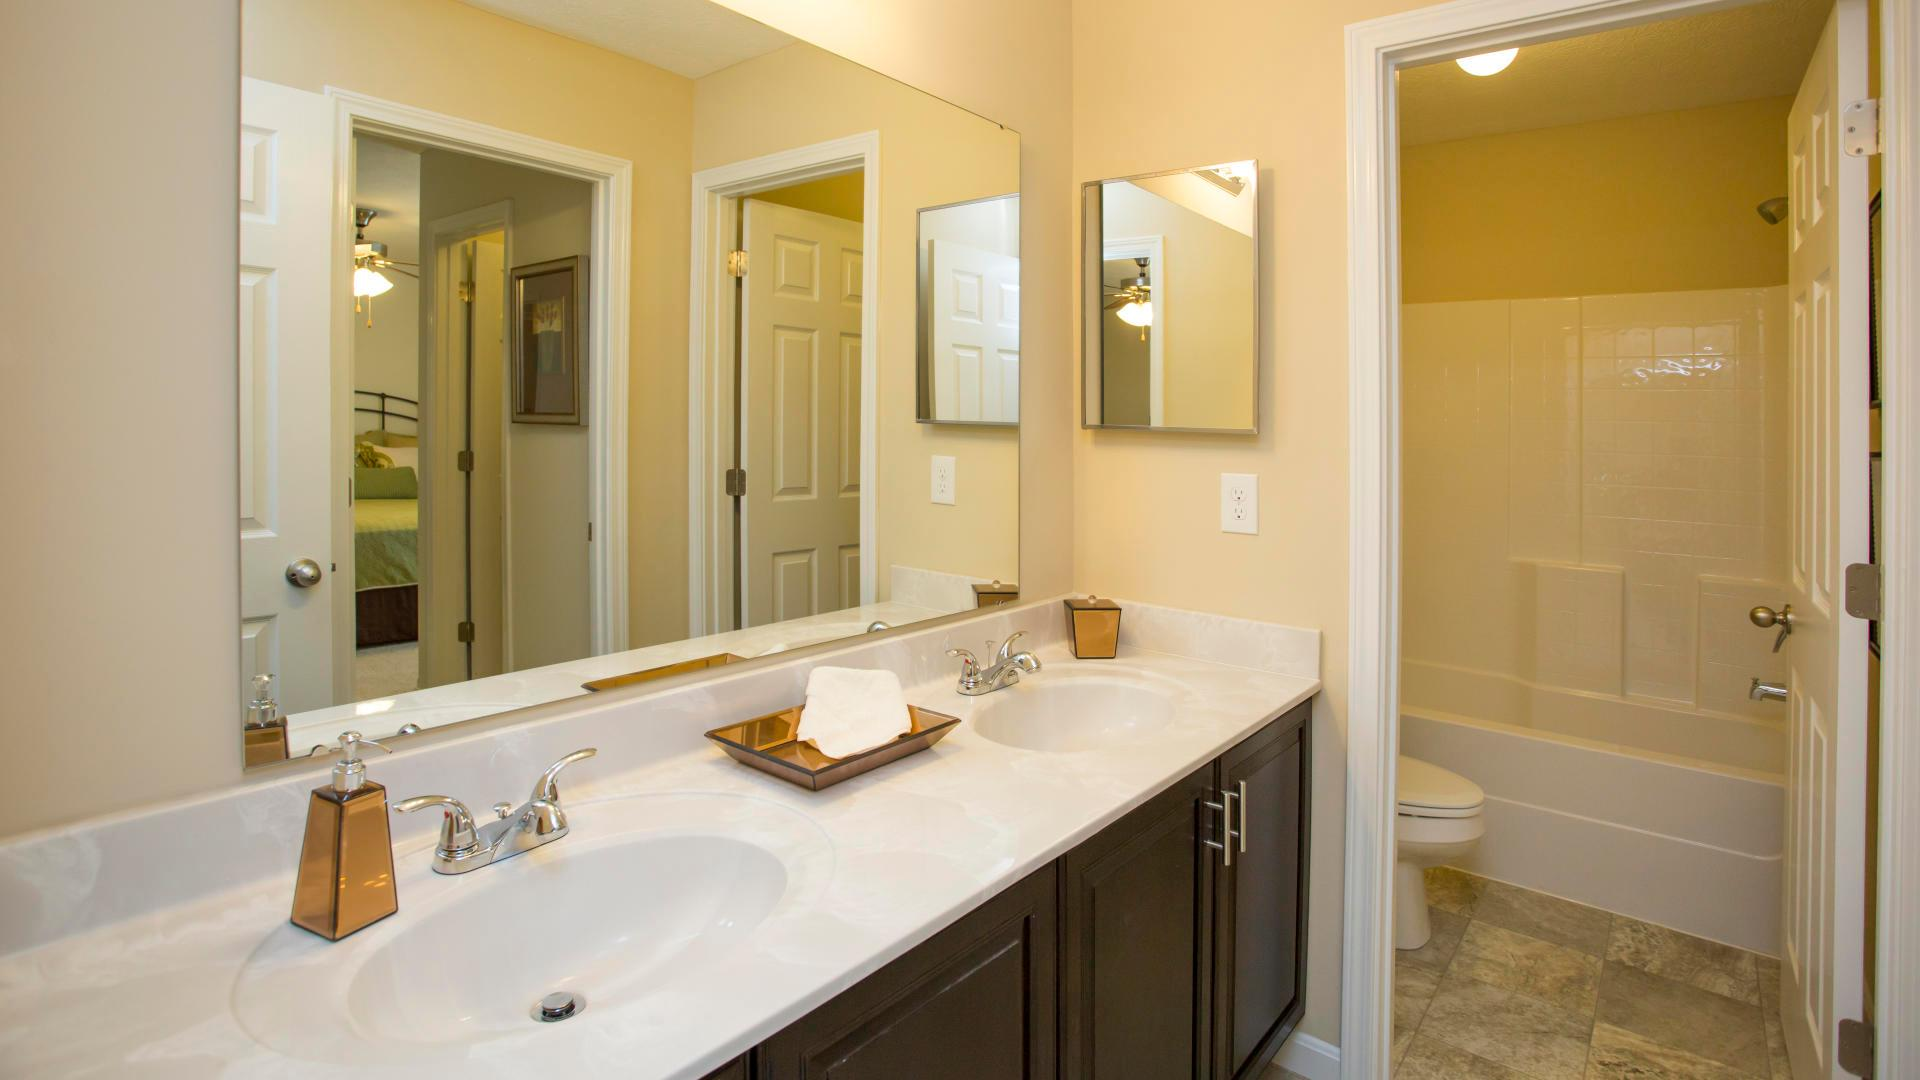 Bathroom featured in the Columbus By Maronda Homes in Columbus, OH